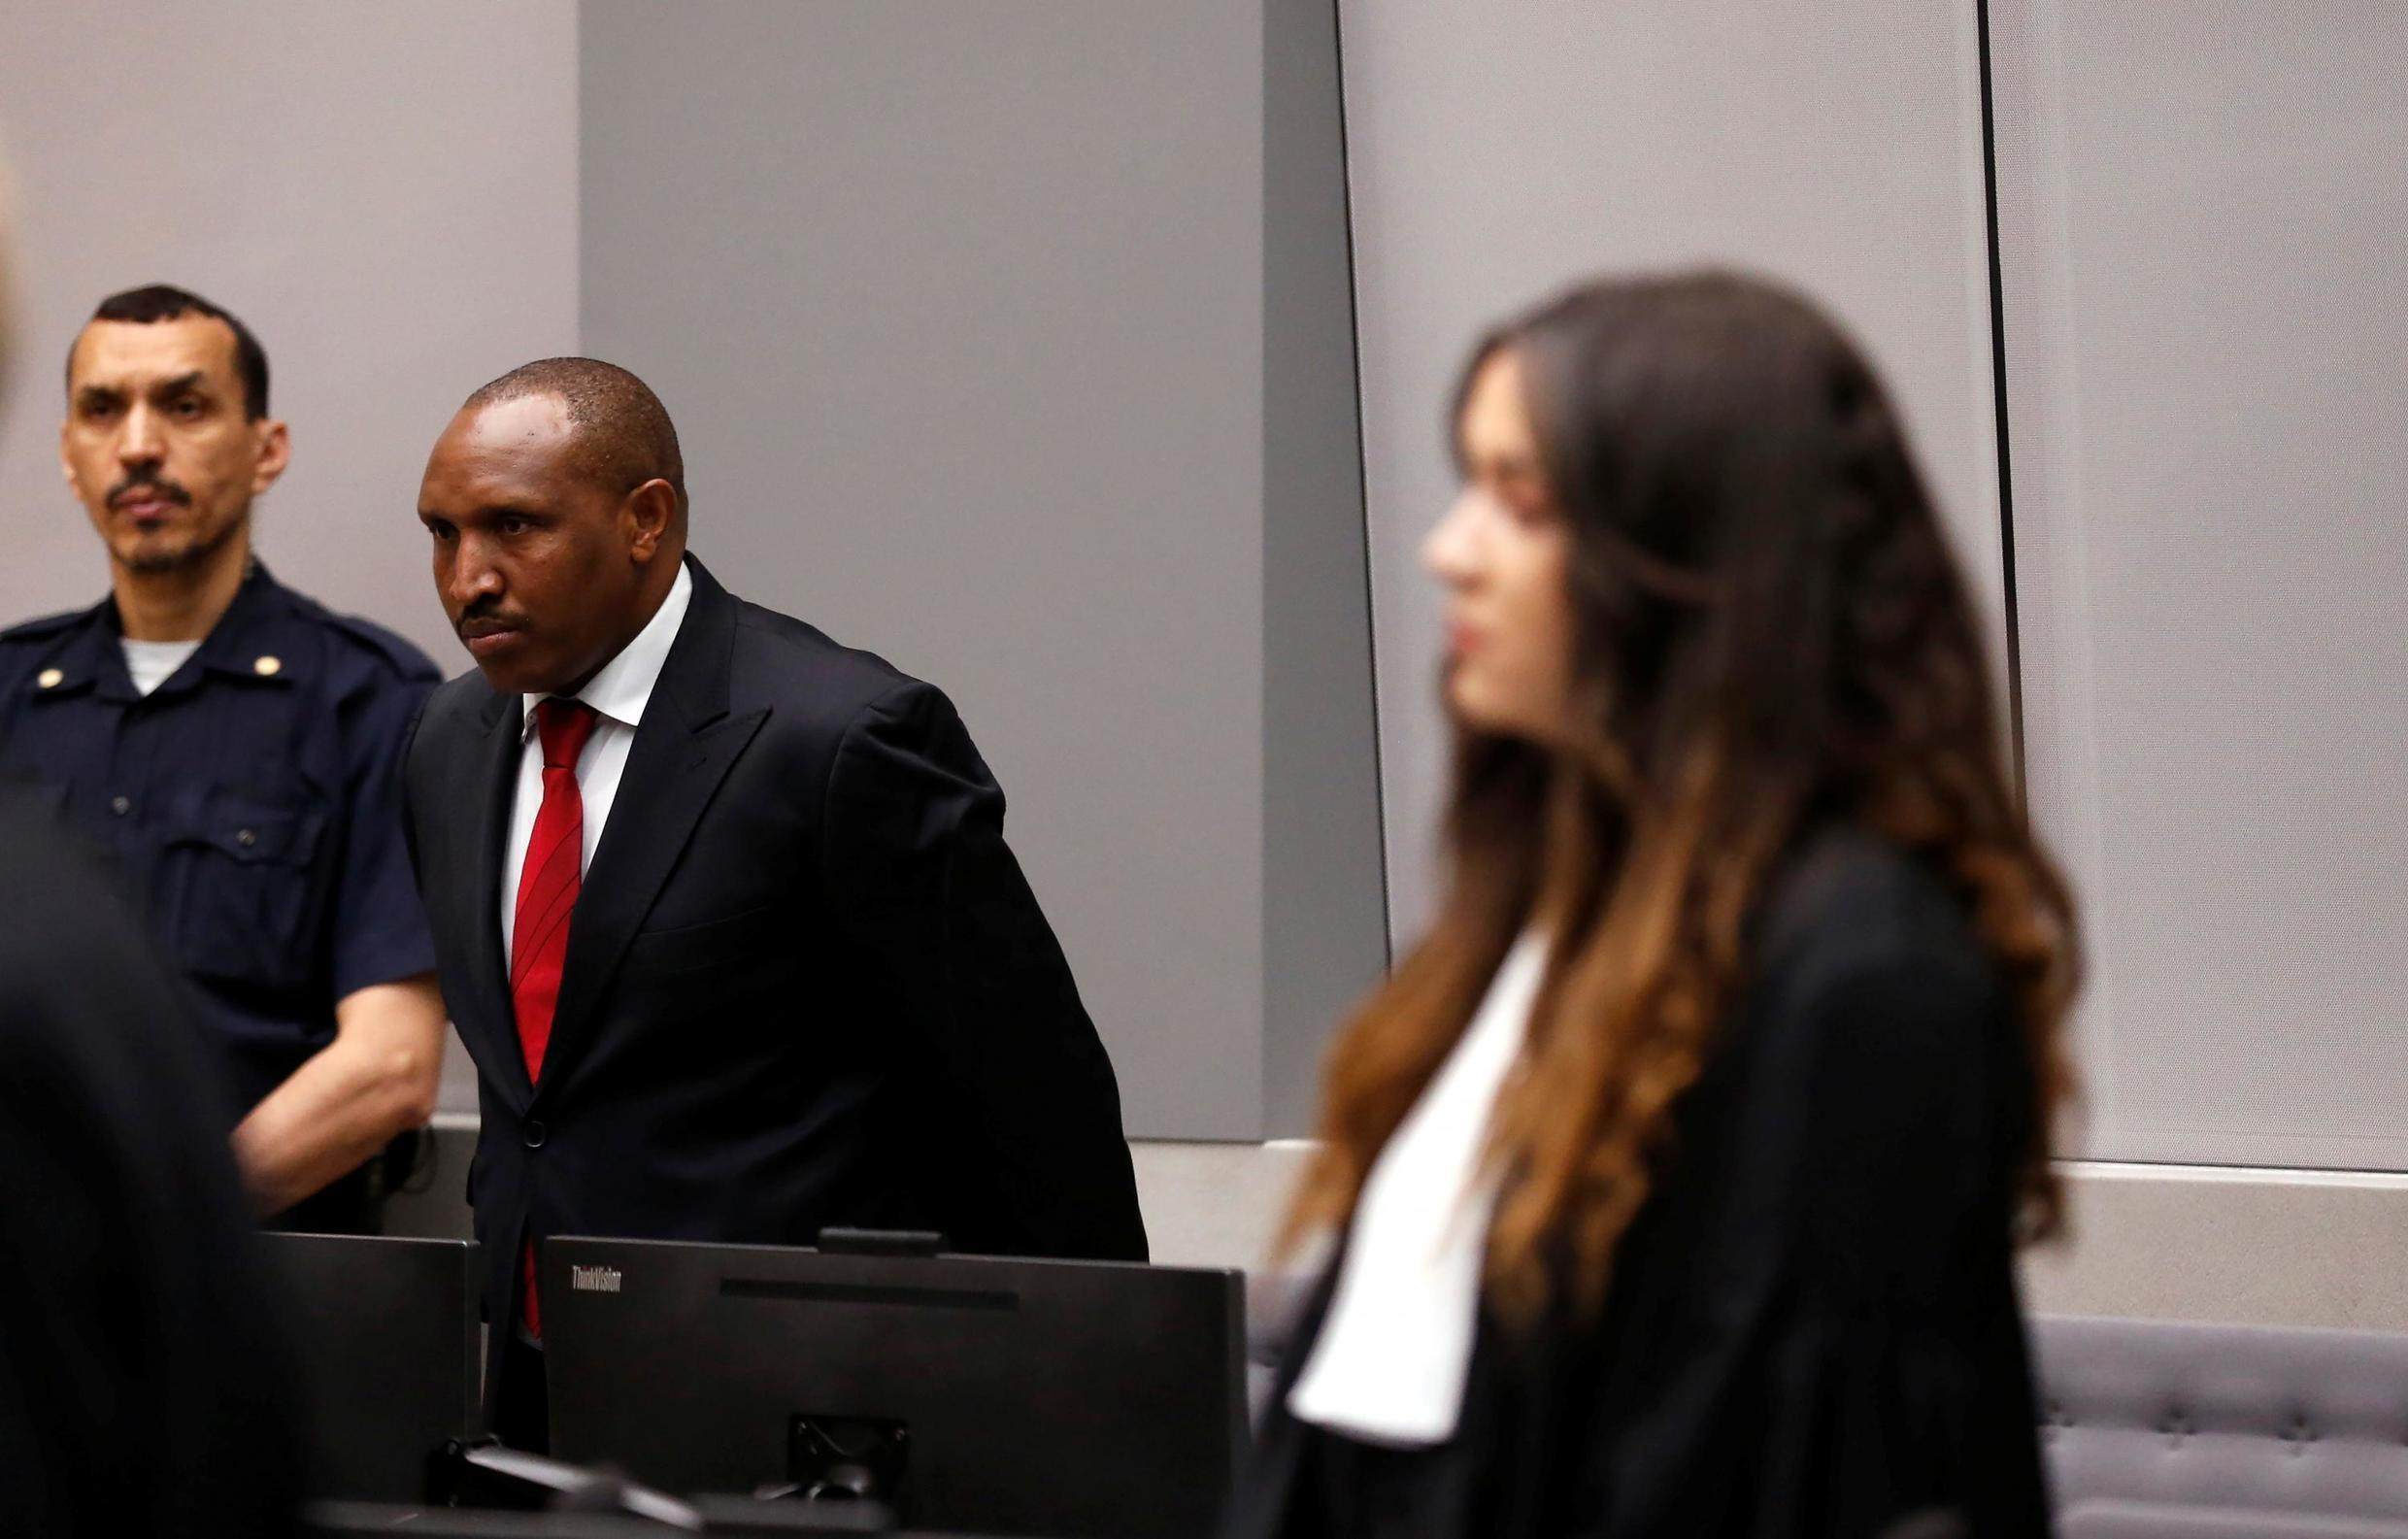 Congolese militia commander Bosco Ntaganda stands in the courtroom of the ICC (International Criminal Court) during his trial in the Hague, the Netherlands July 8, 2019.